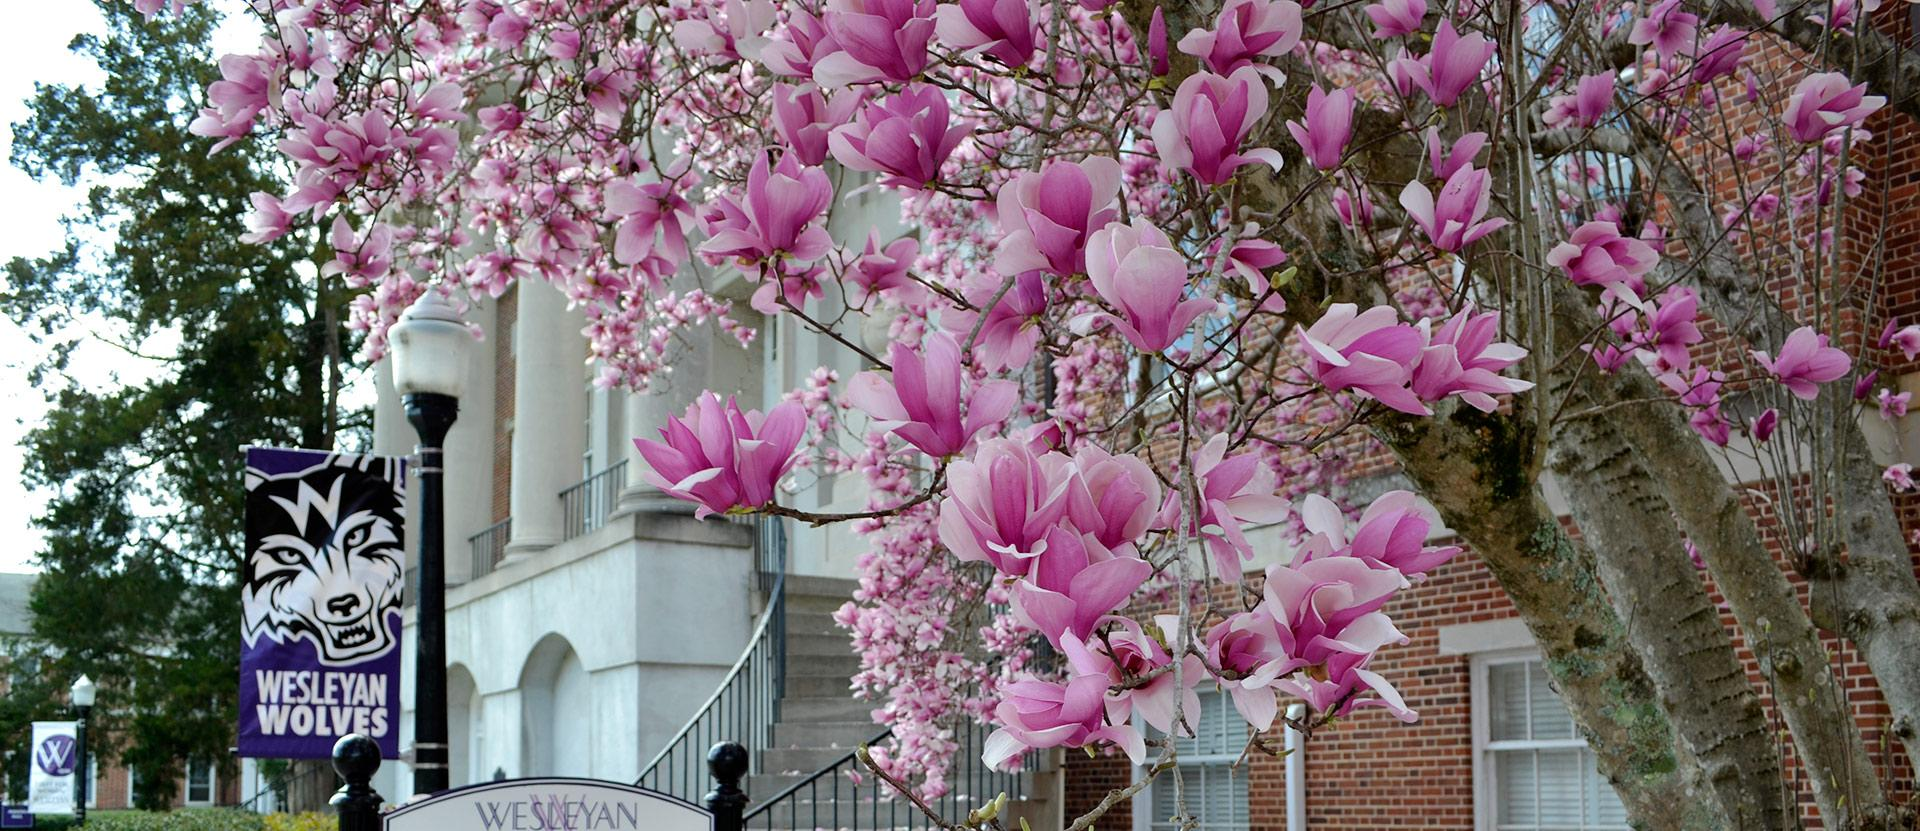 Tulip tree with pink blooms in foreground with Candler building in background.